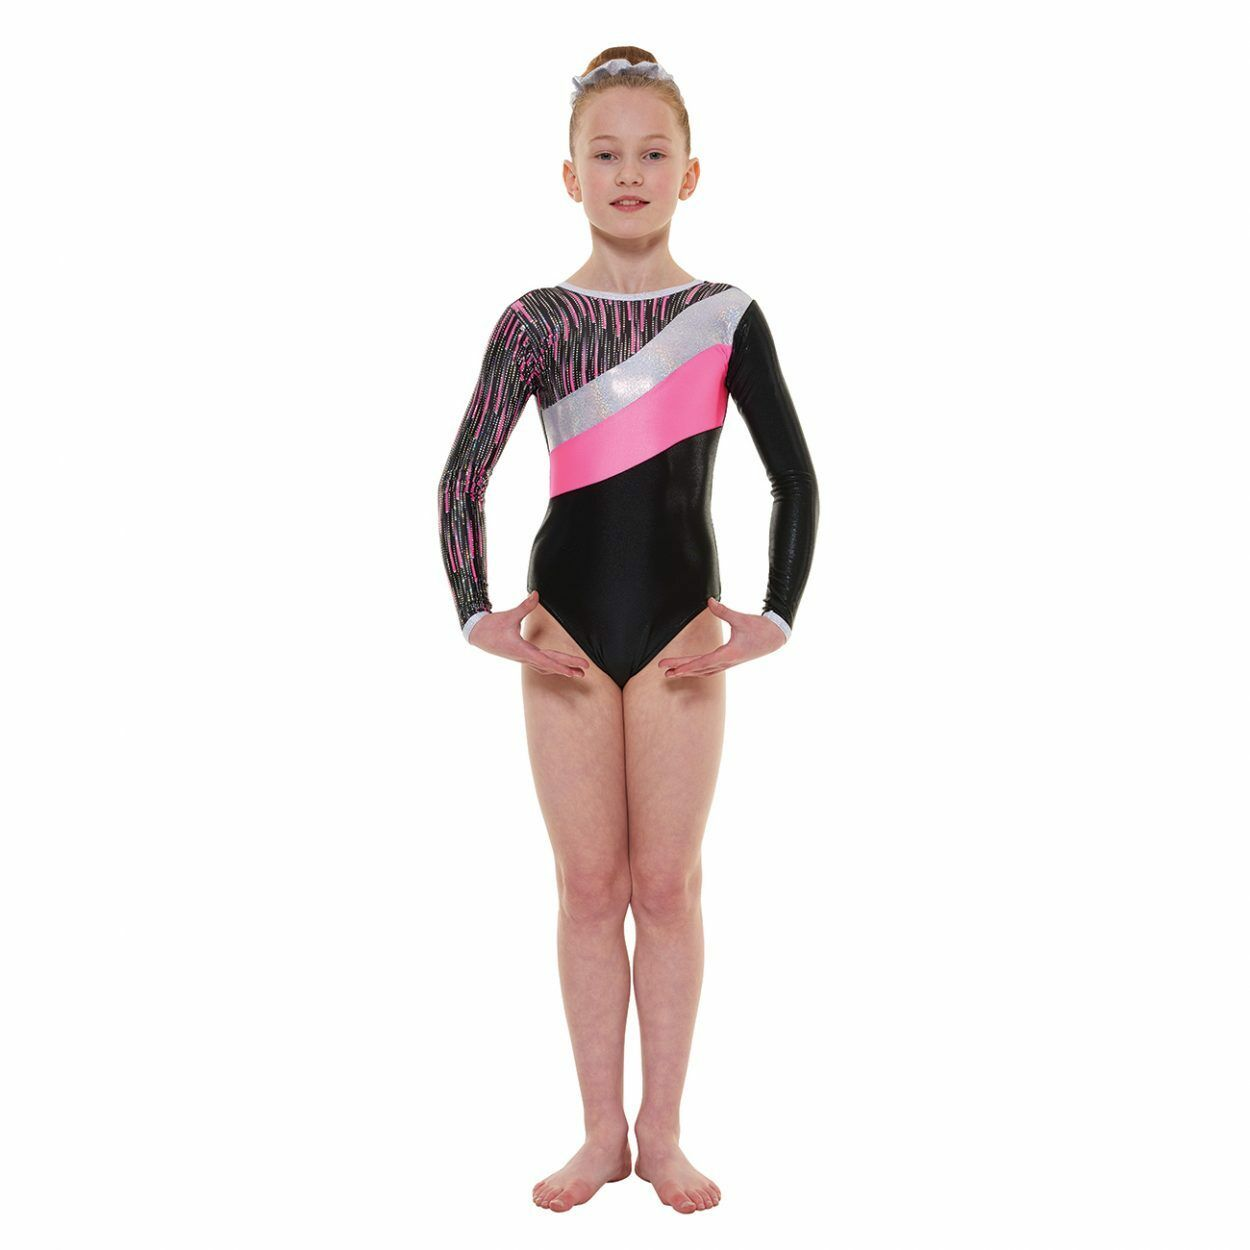 LONG SLEEVED GYMNASTICS LEOTARD FOILED NYLON LYCRA & SHINE (GYM44)